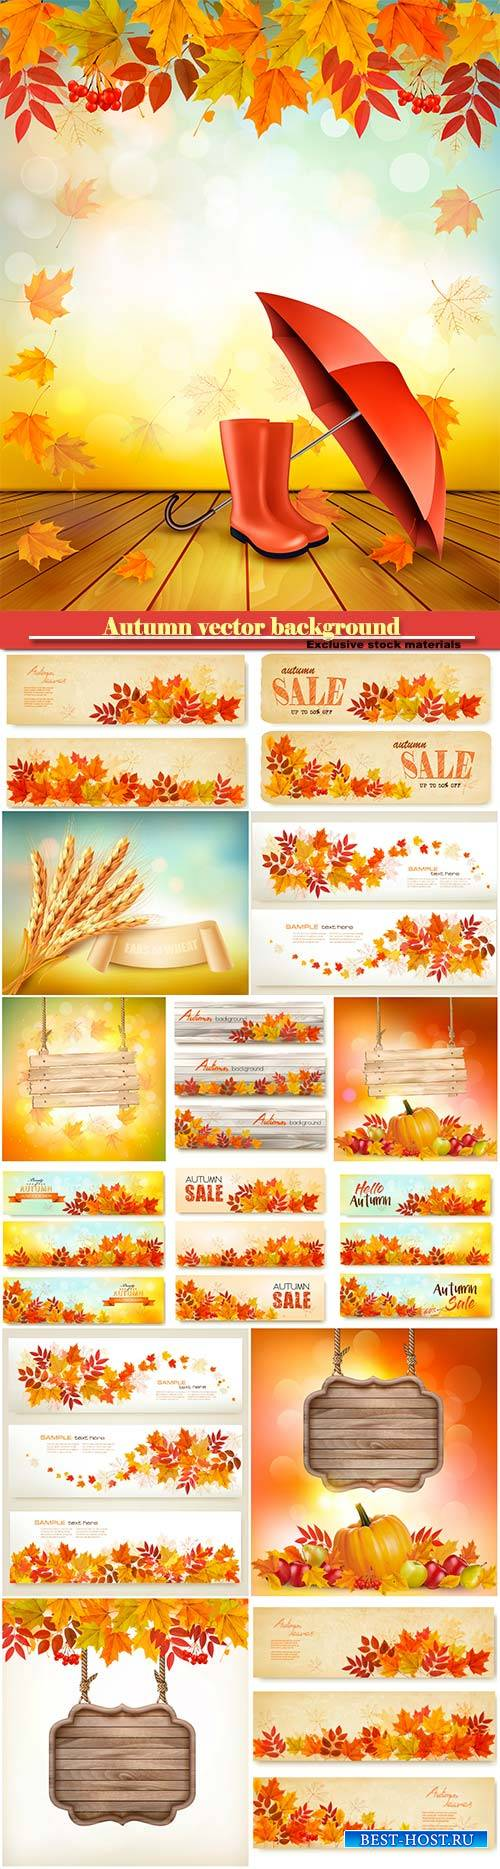 Autumn vector background with fruit and leaves, autumn sale banners